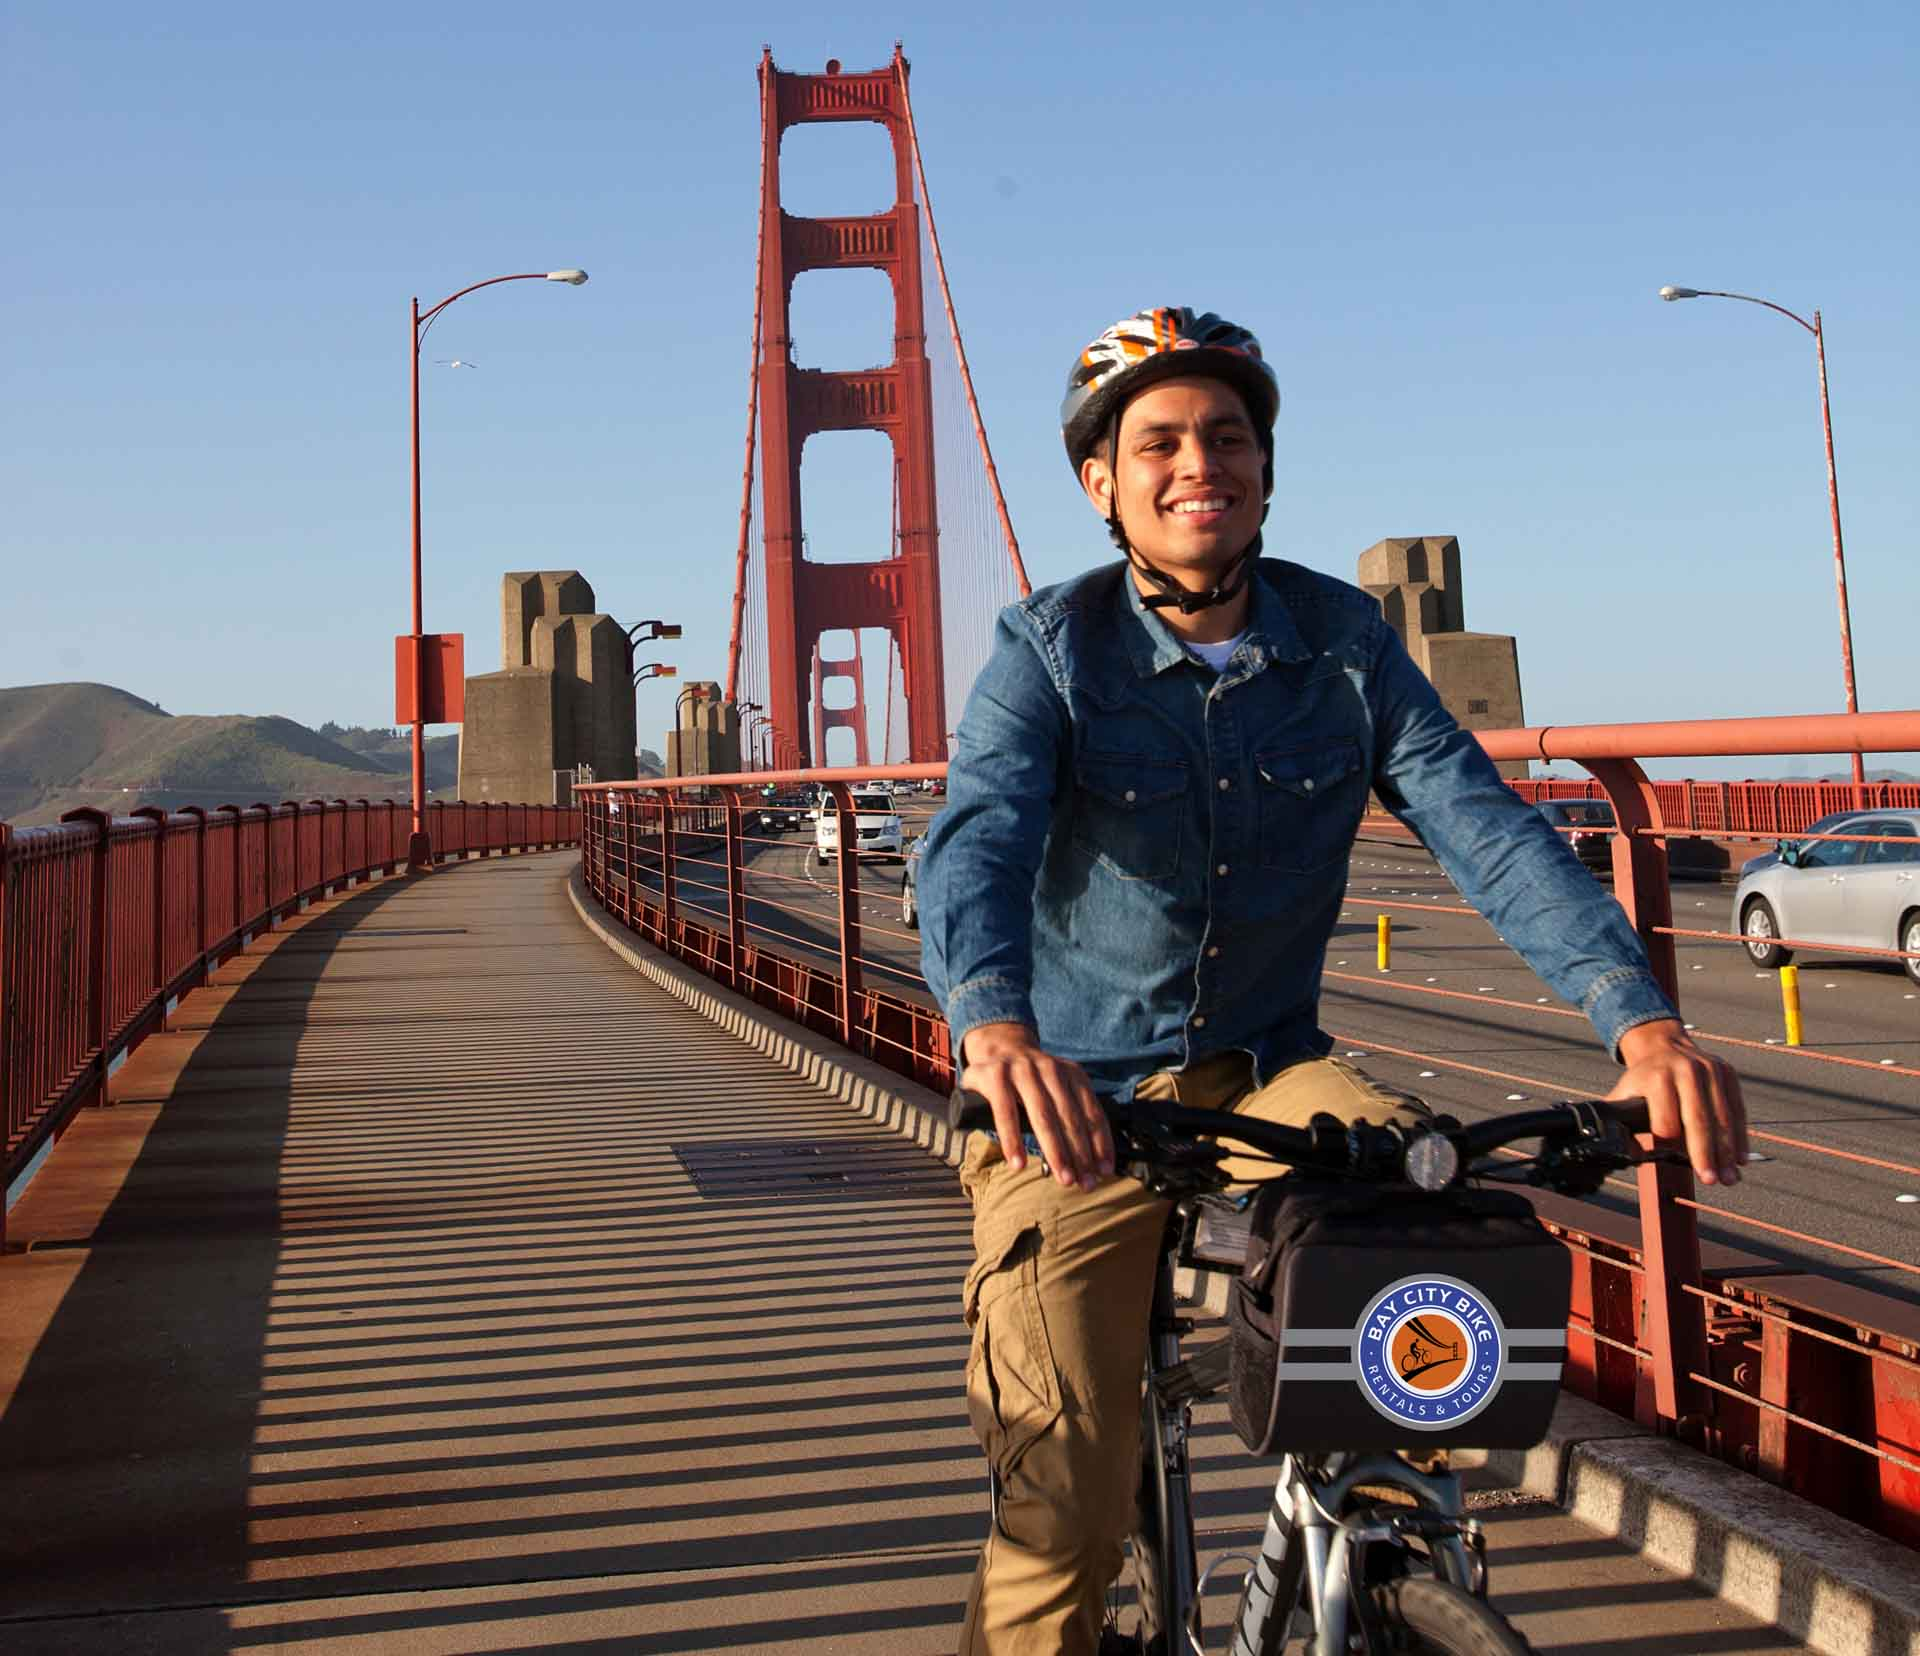 San Francisco Tours Sightseeing Activities In San